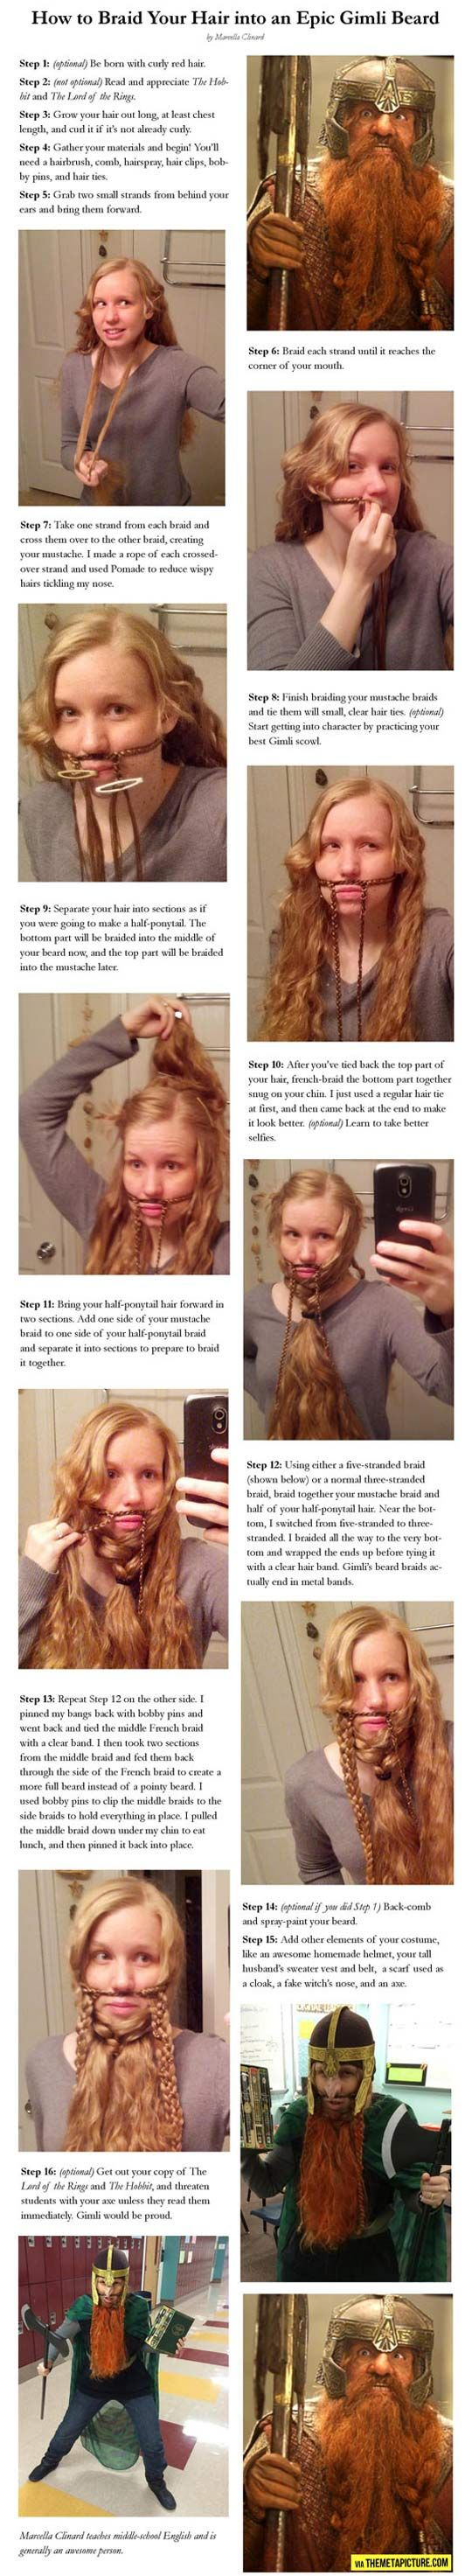 Turning you hair into an epic beard, don't think I'll ever need this, but just in case... XD